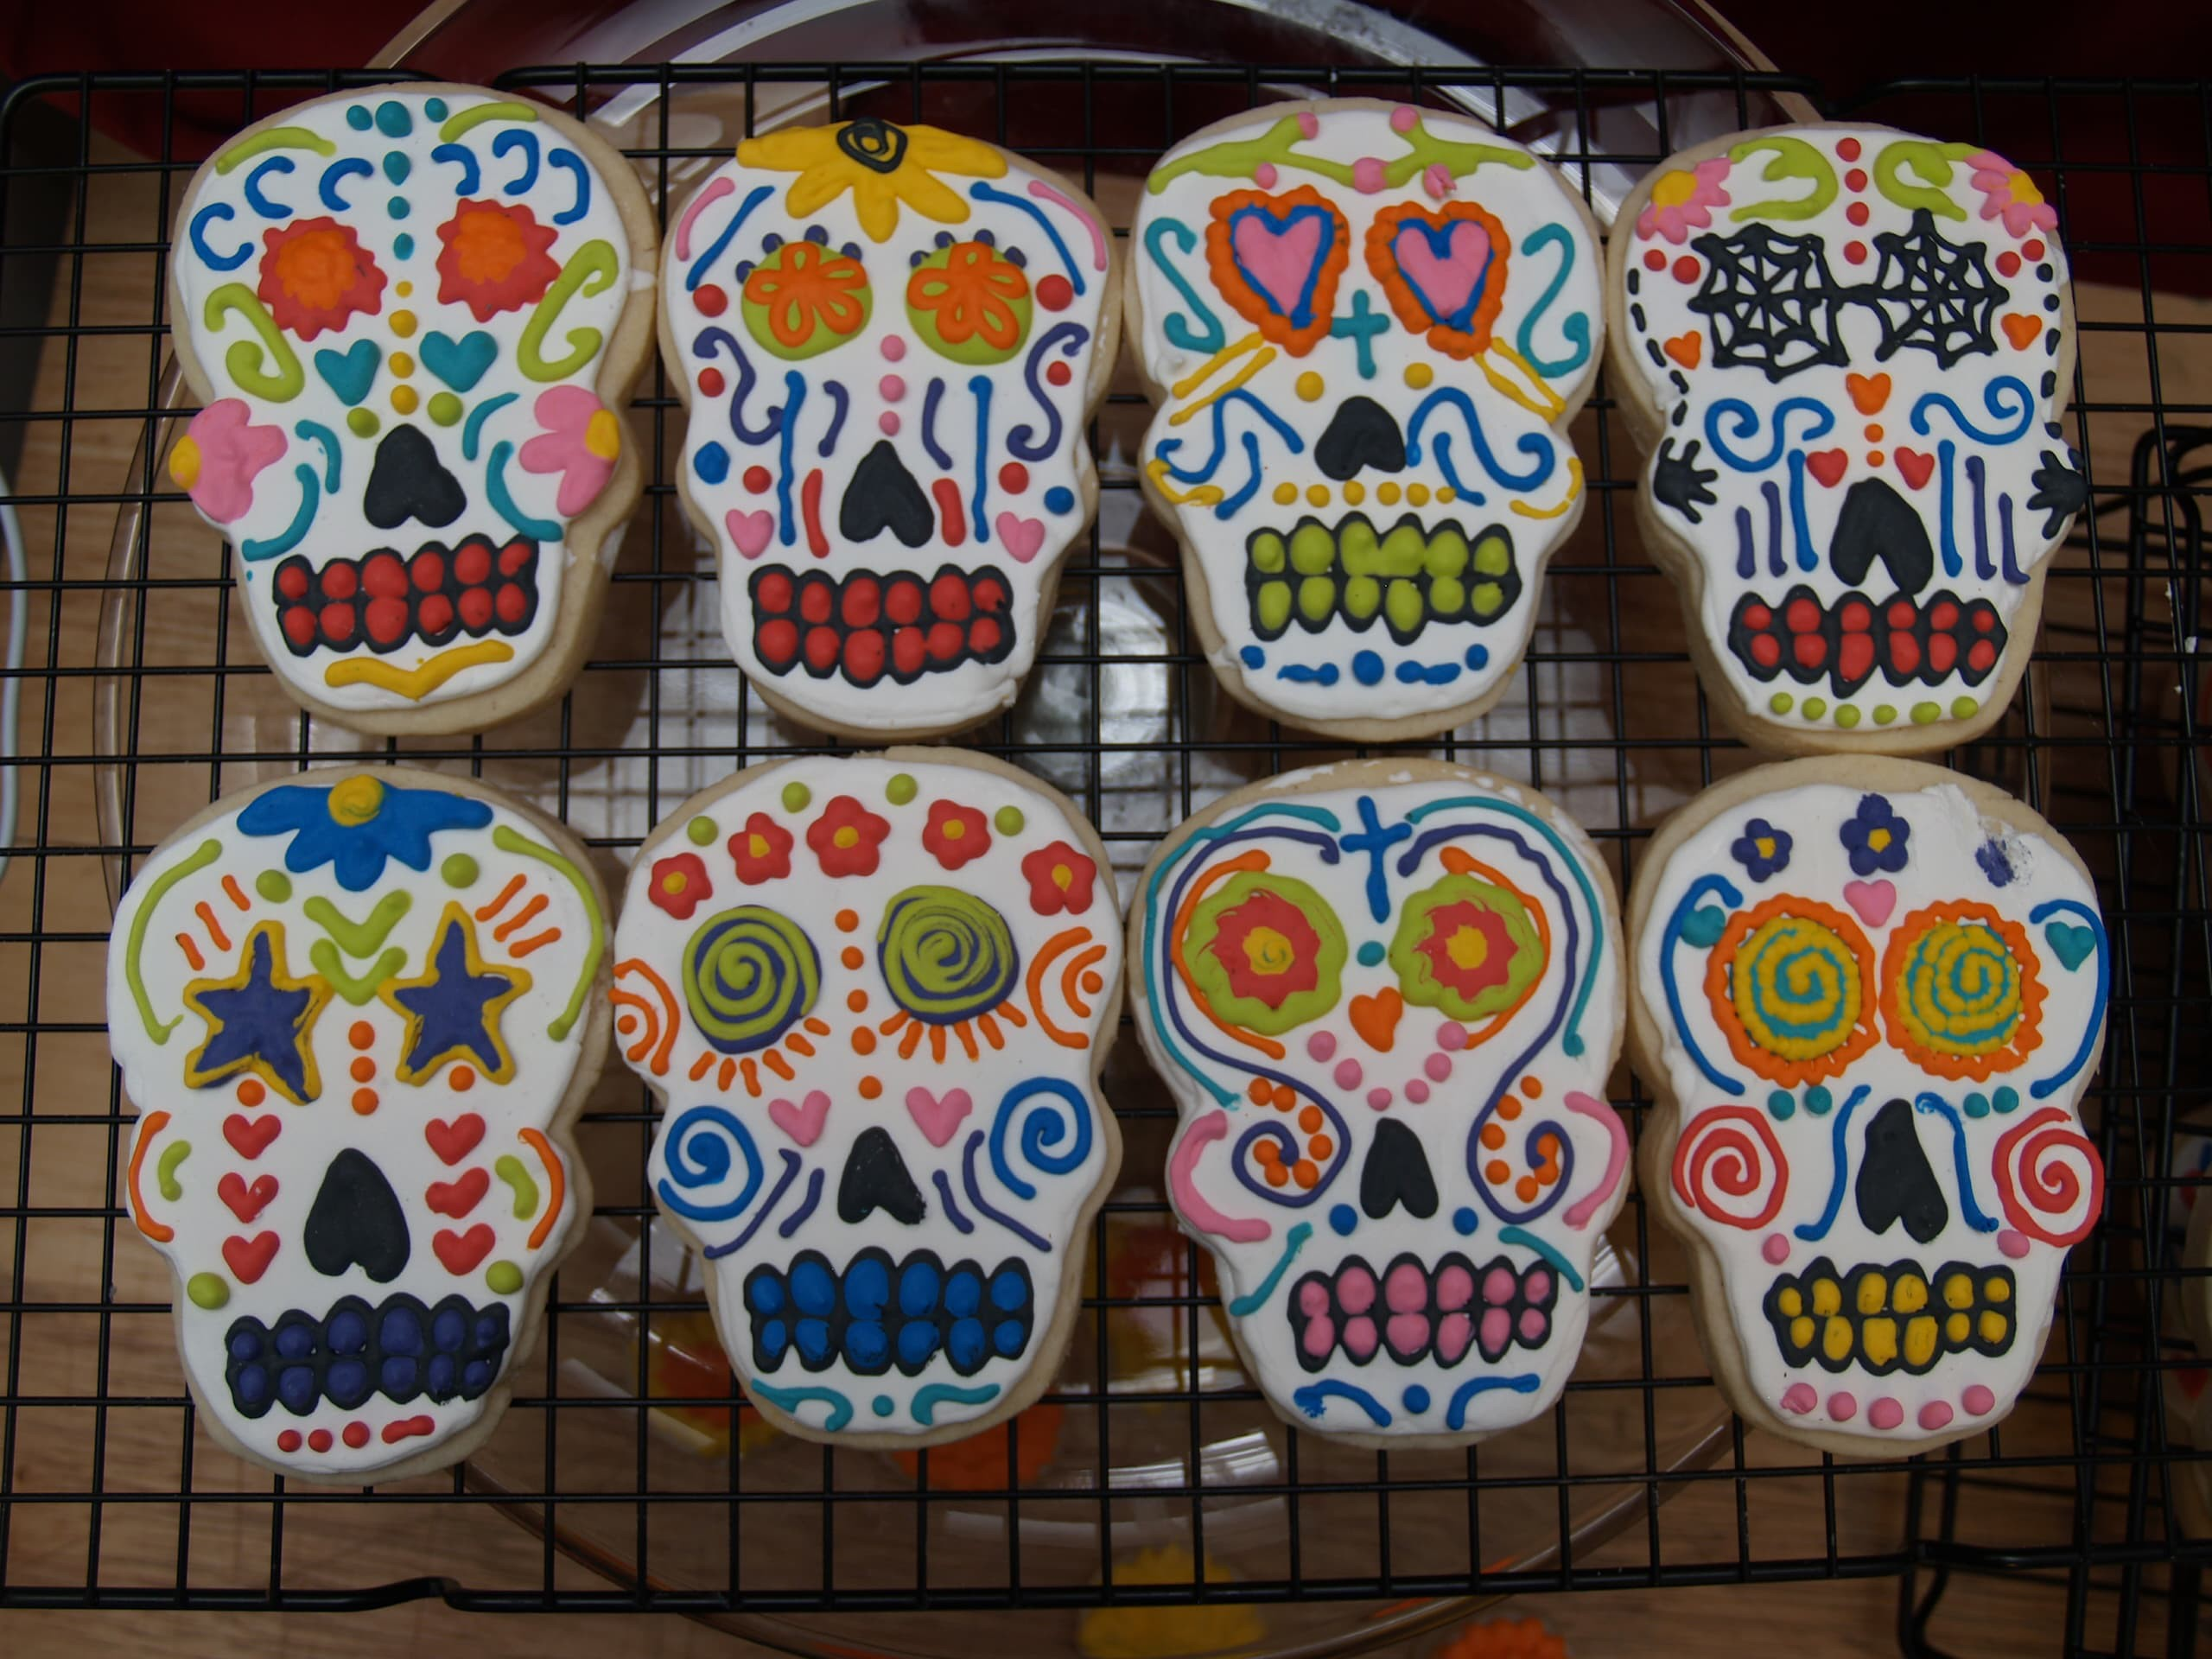 Everything You Need To Know About The Sugar Skull